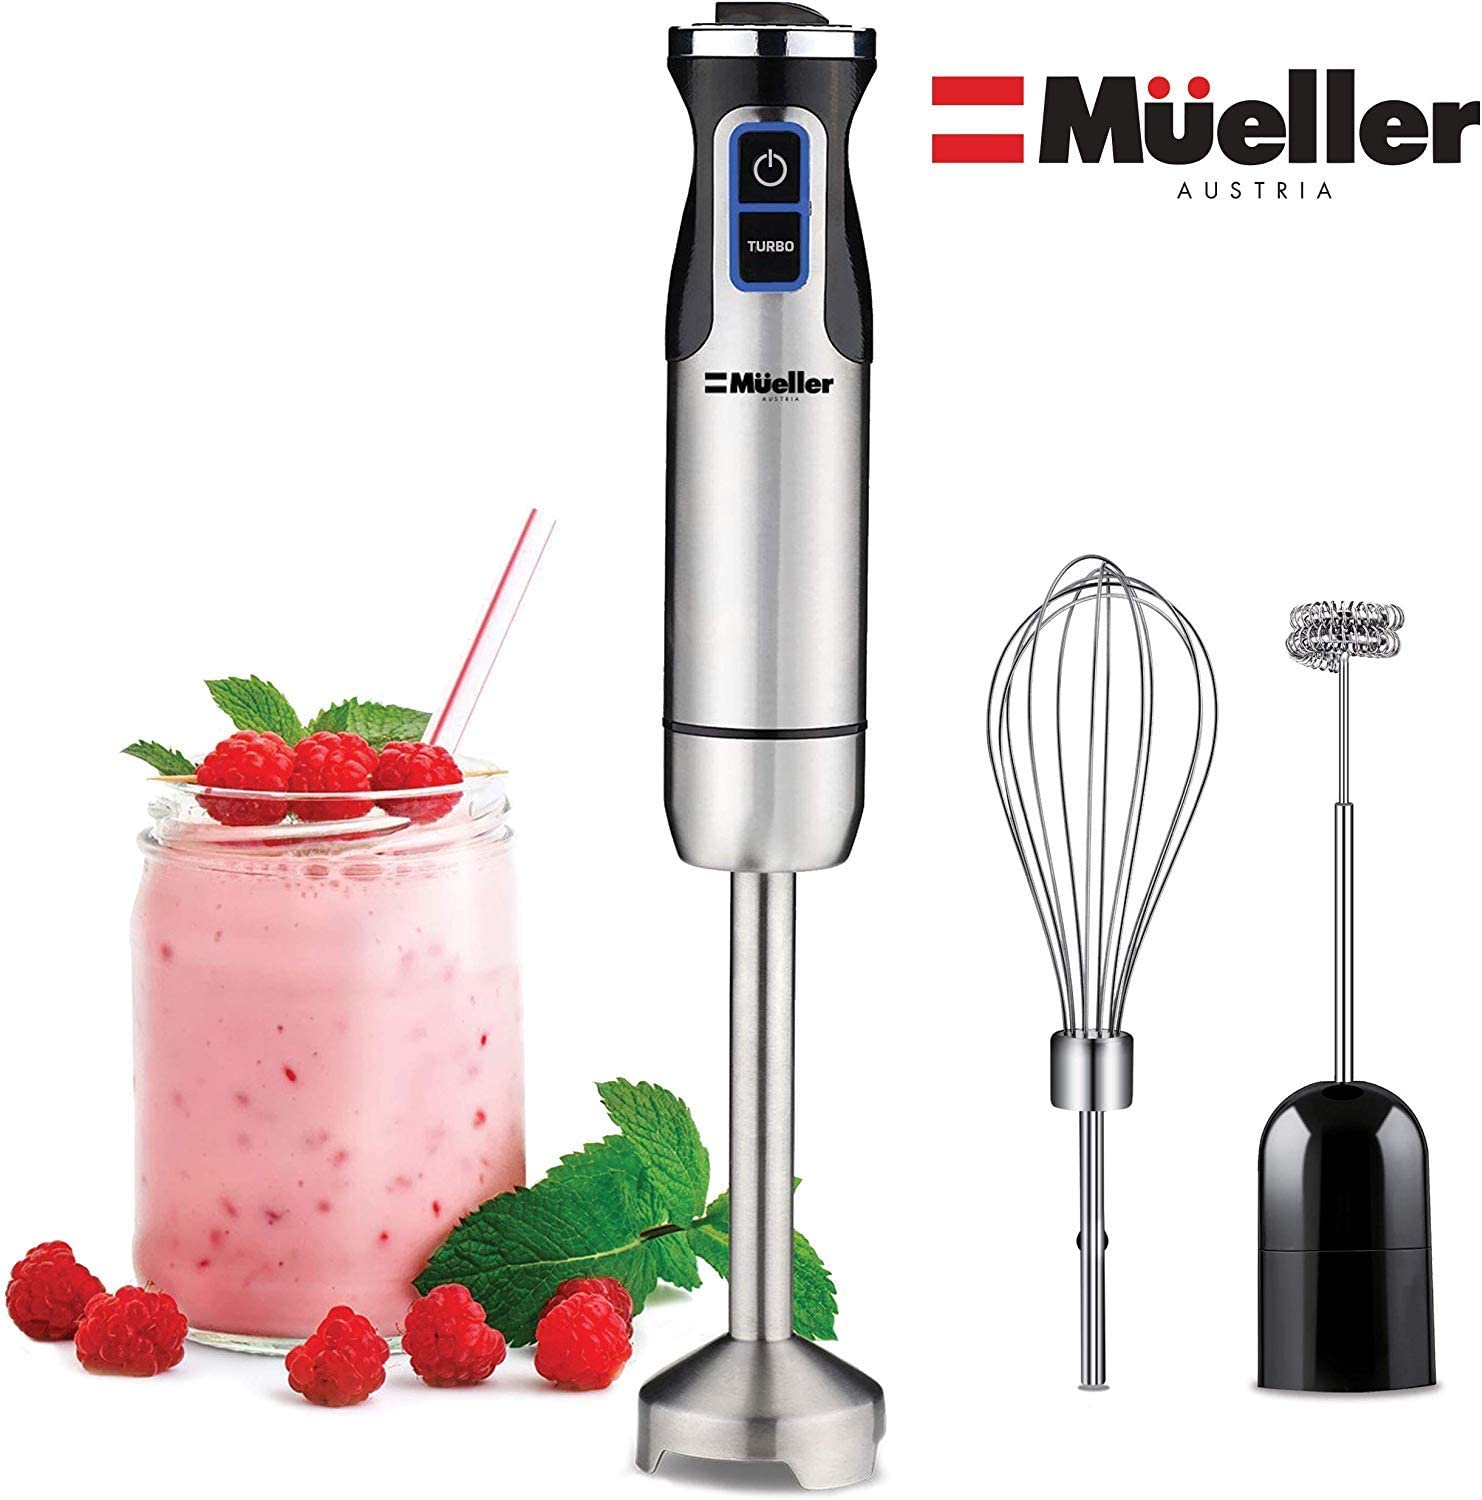 Top 7 Best Immersion Blenders in 2021 – Buyer's Guide